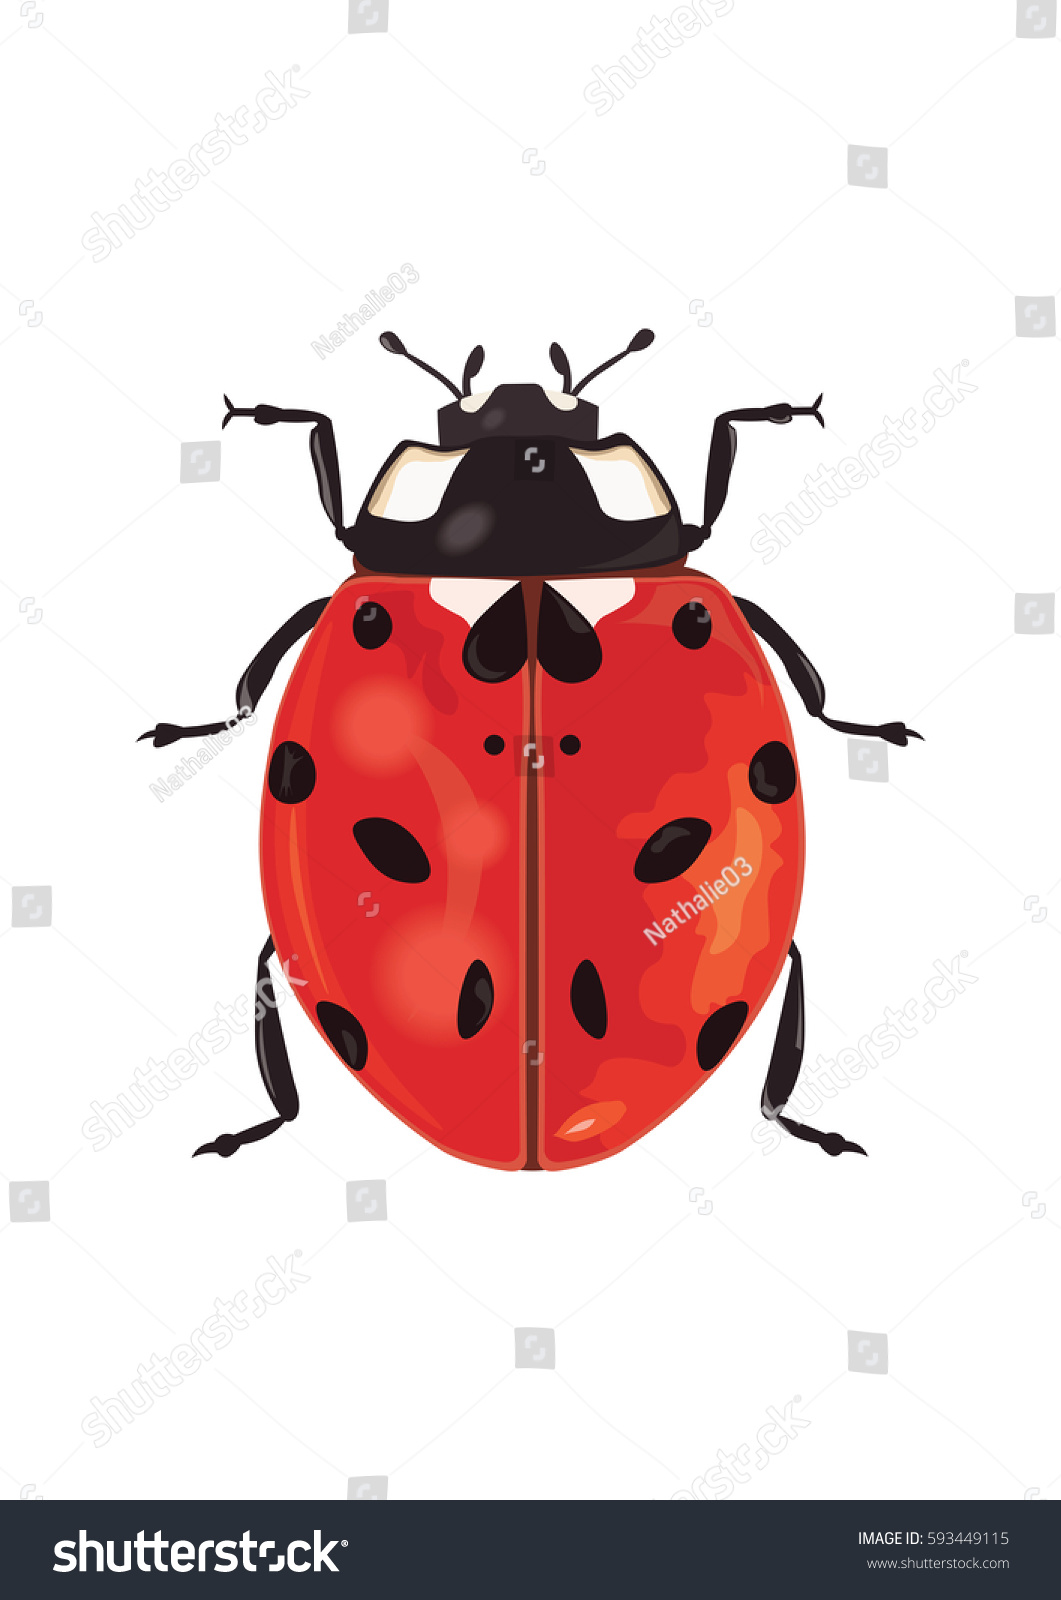 What Are Ladybugs A Symbol Of Choice Image - definition of